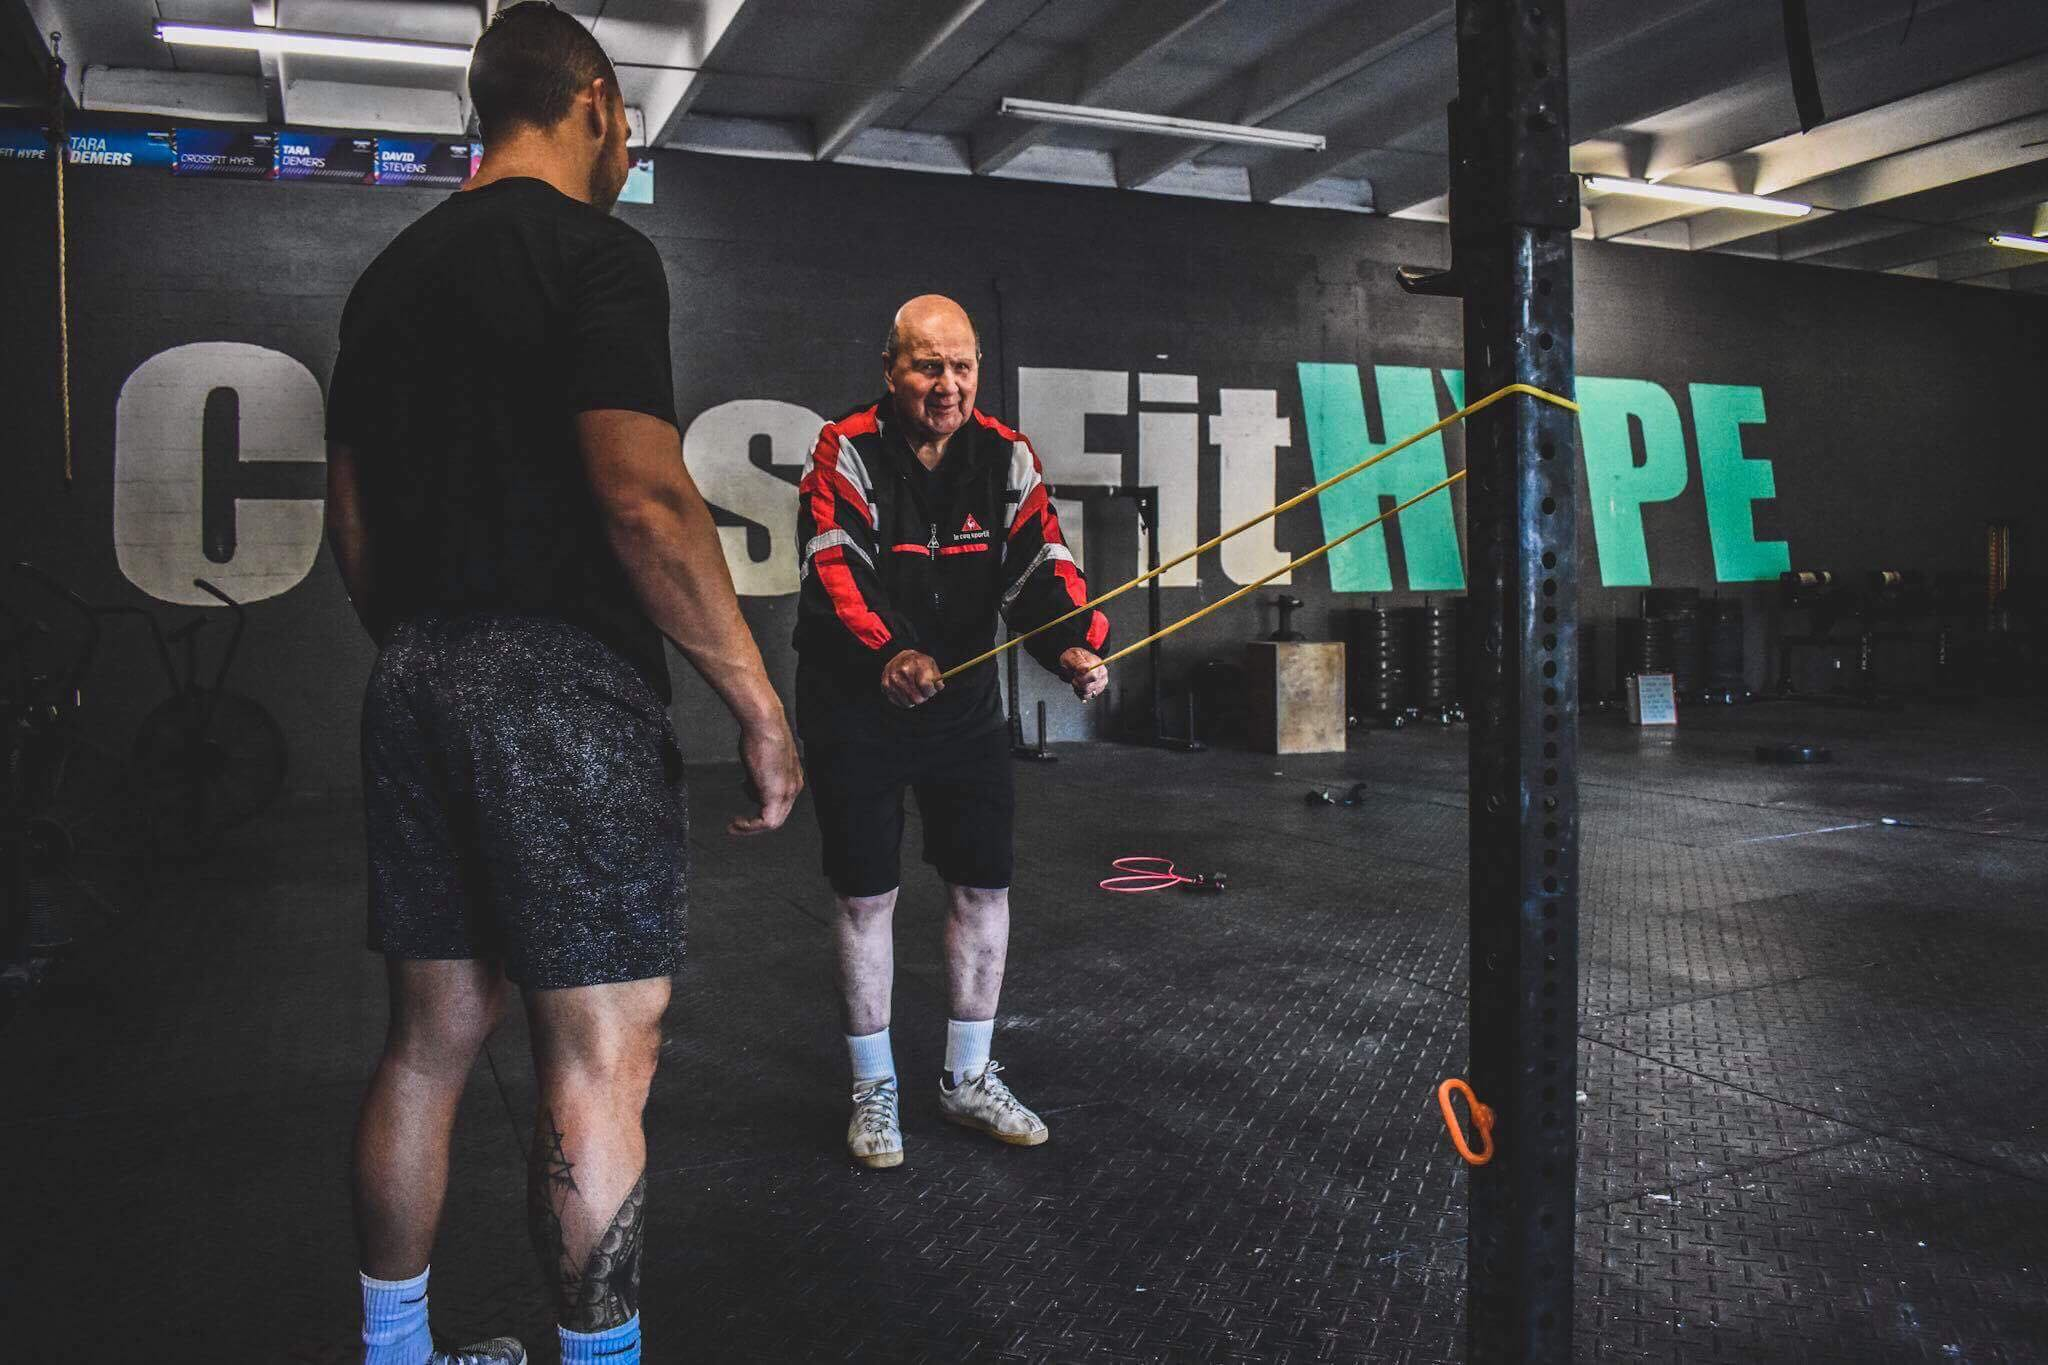 Tim Mustion Musti Personal training CrossFit HYPE fitness gym one on one private.jpg